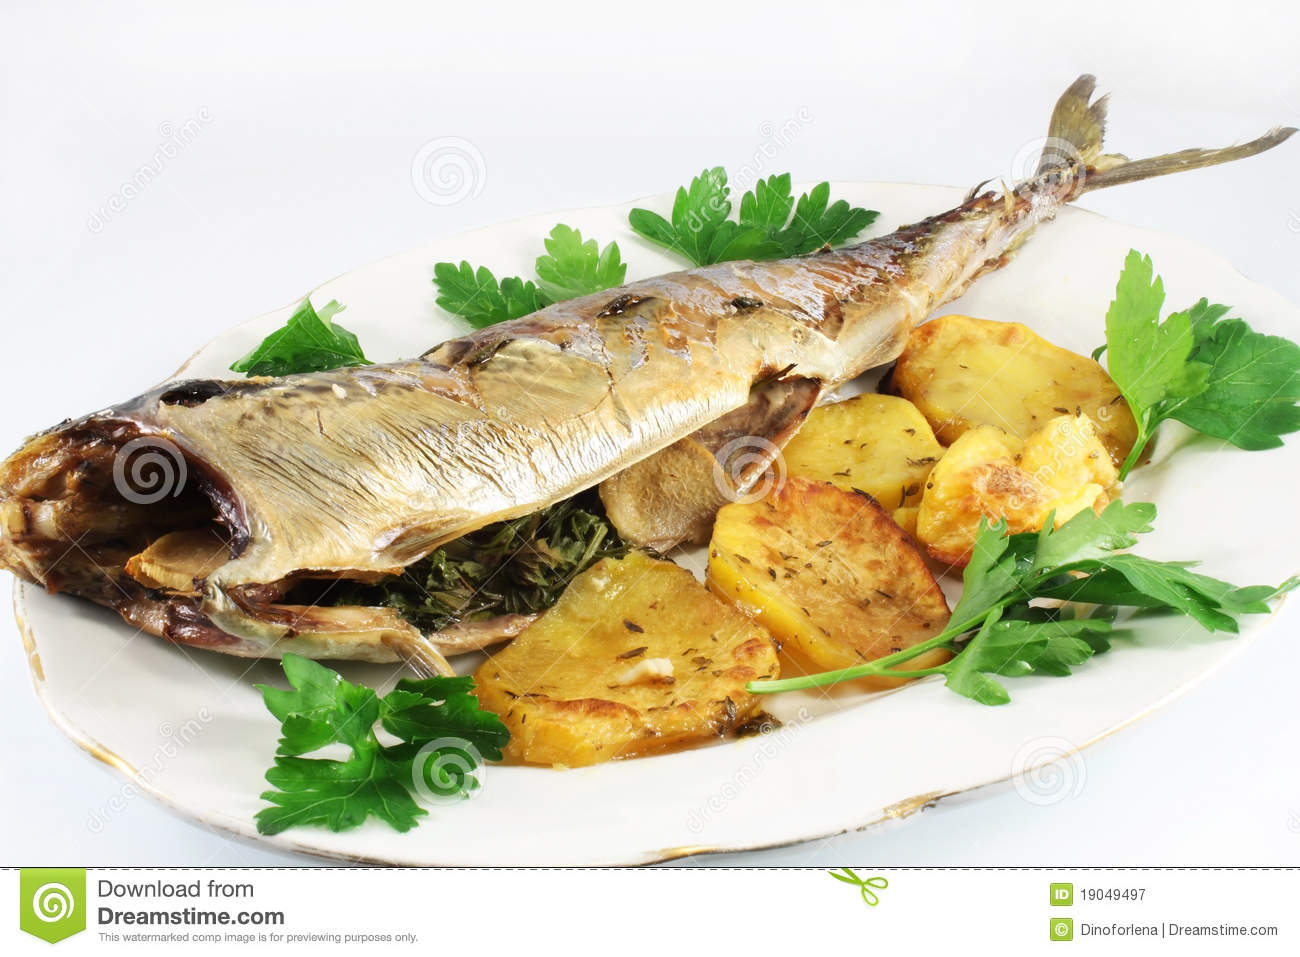 Dish with Grilled Mackerel and Potatoes.